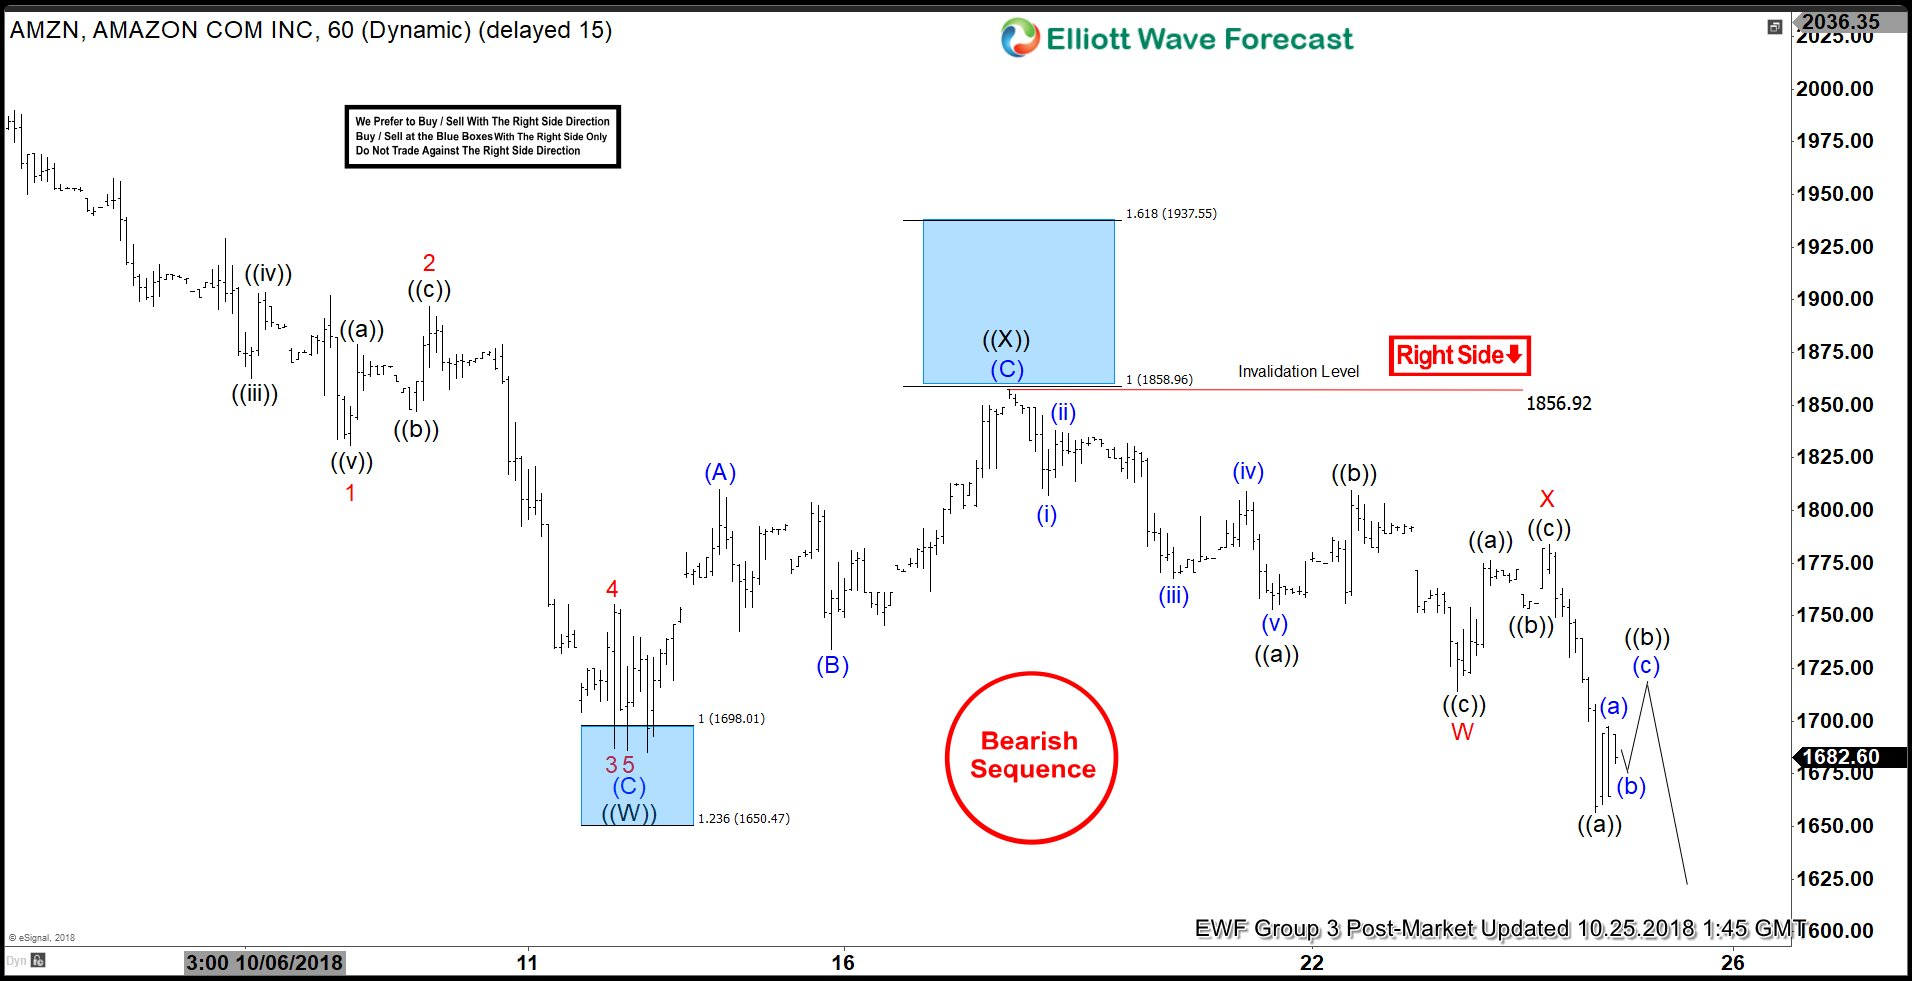 Amazon Elliott Wave View: Favoring More Downside